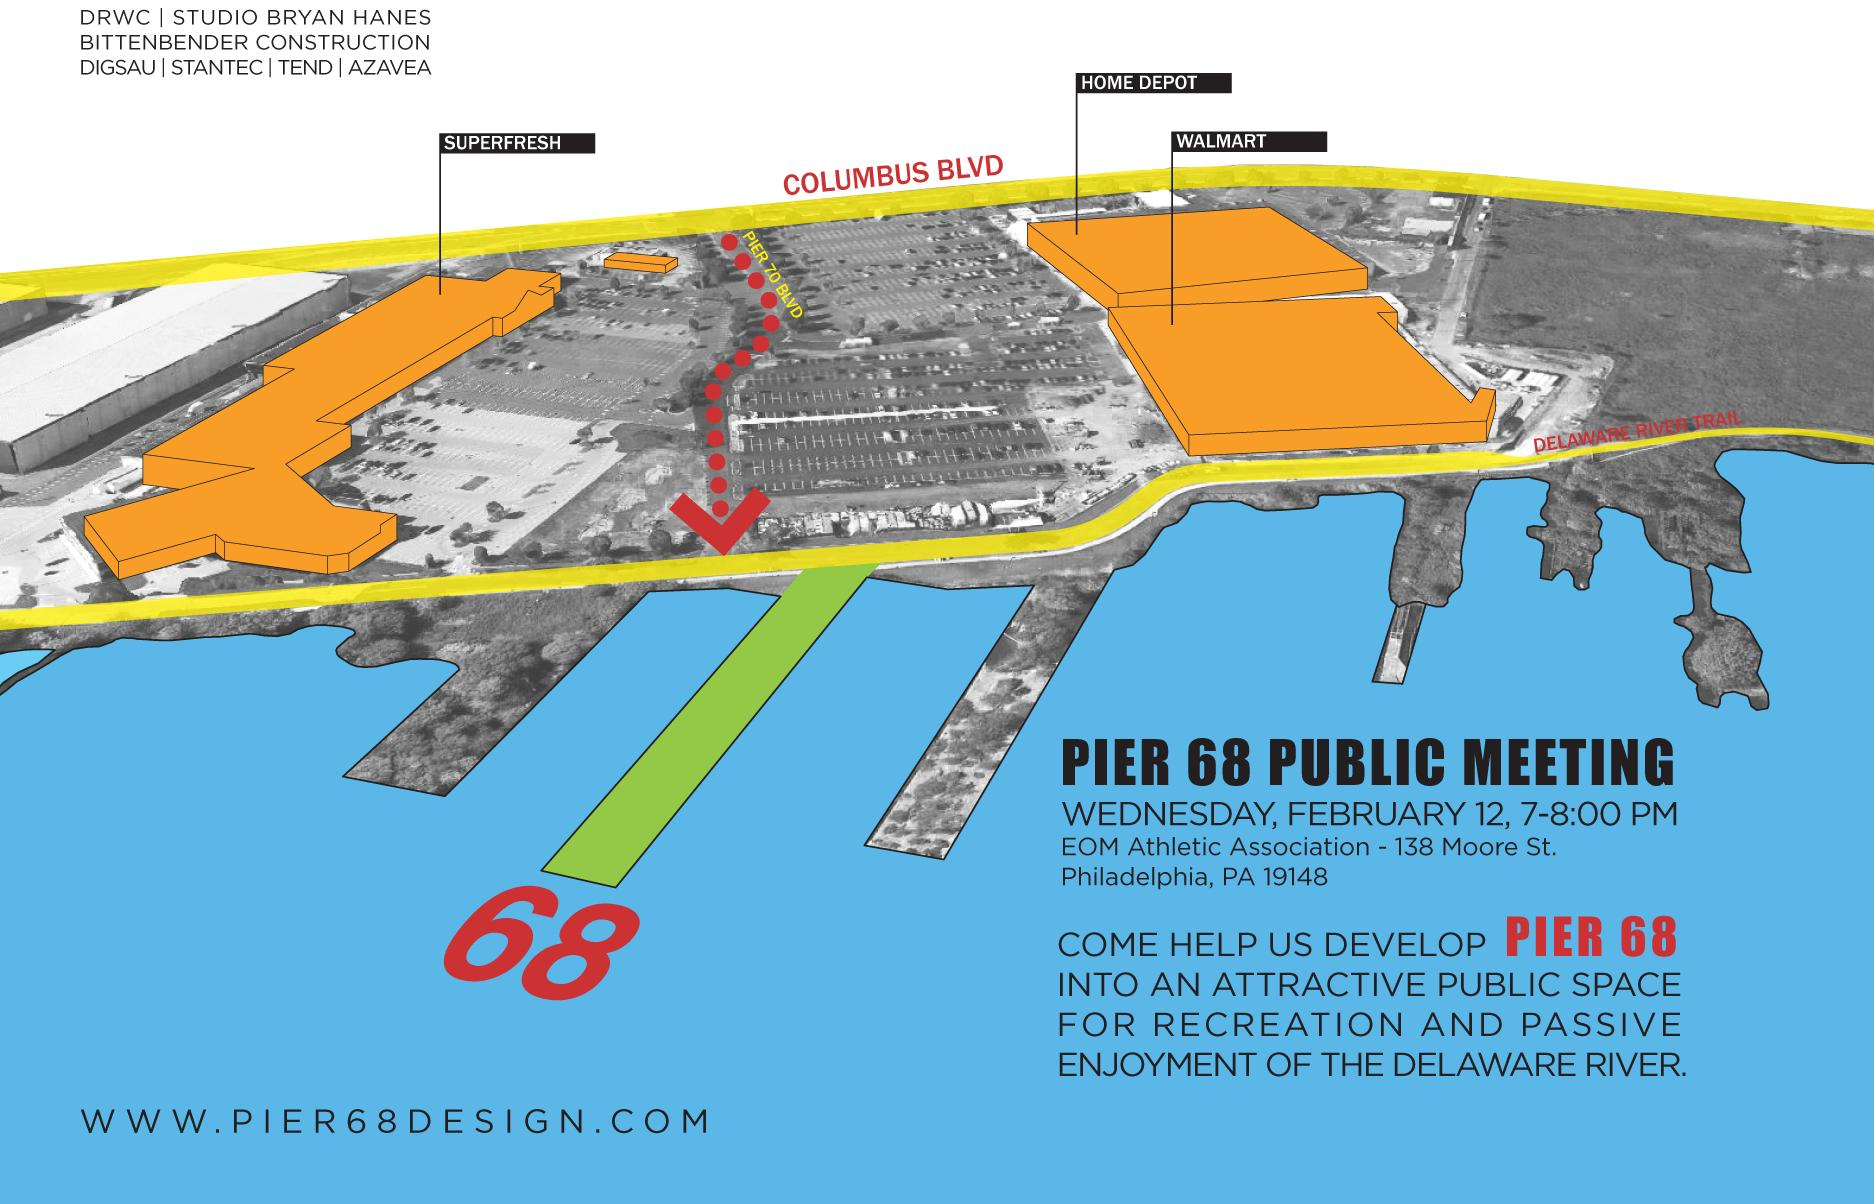 Pier 68 meeting information